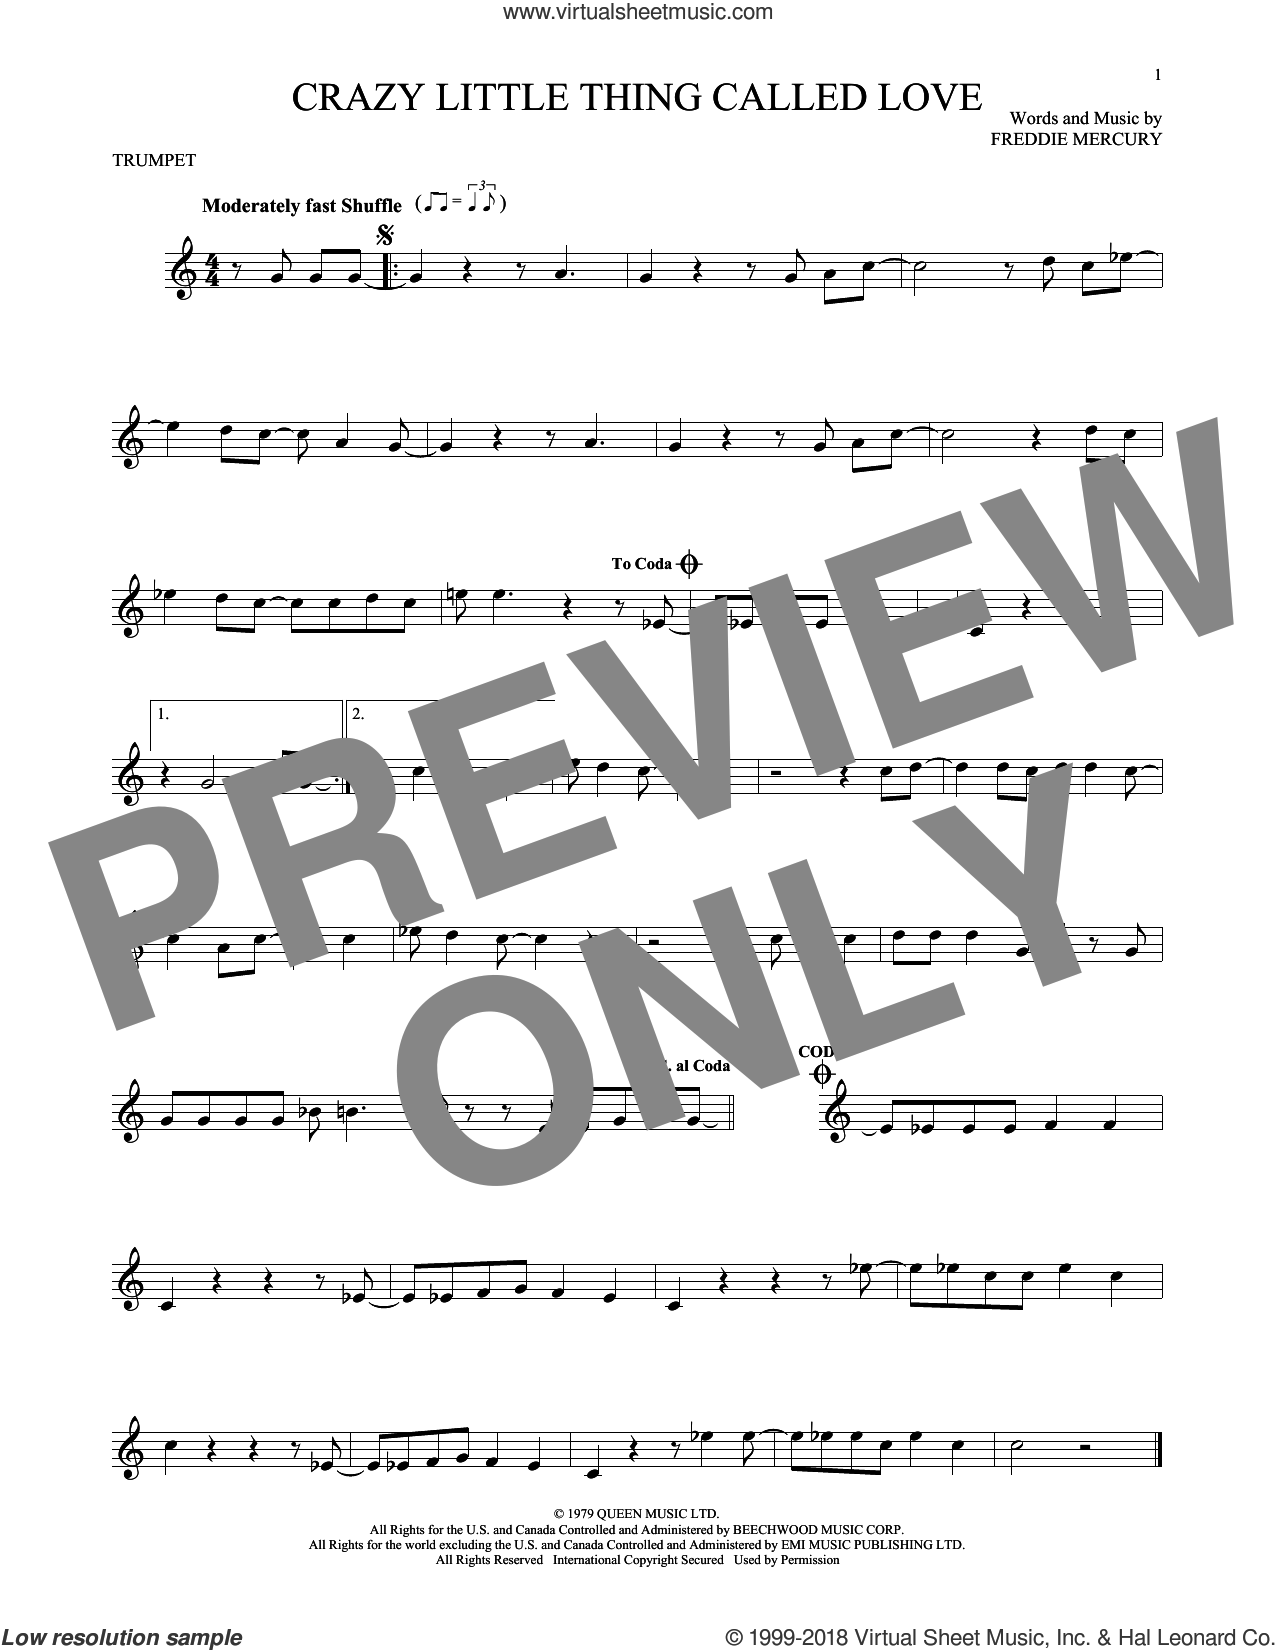 Crazy Little Thing Called Love sheet music for trumpet solo by Queen, Dwight Yoakam and Freddie Mercury, intermediate skill level